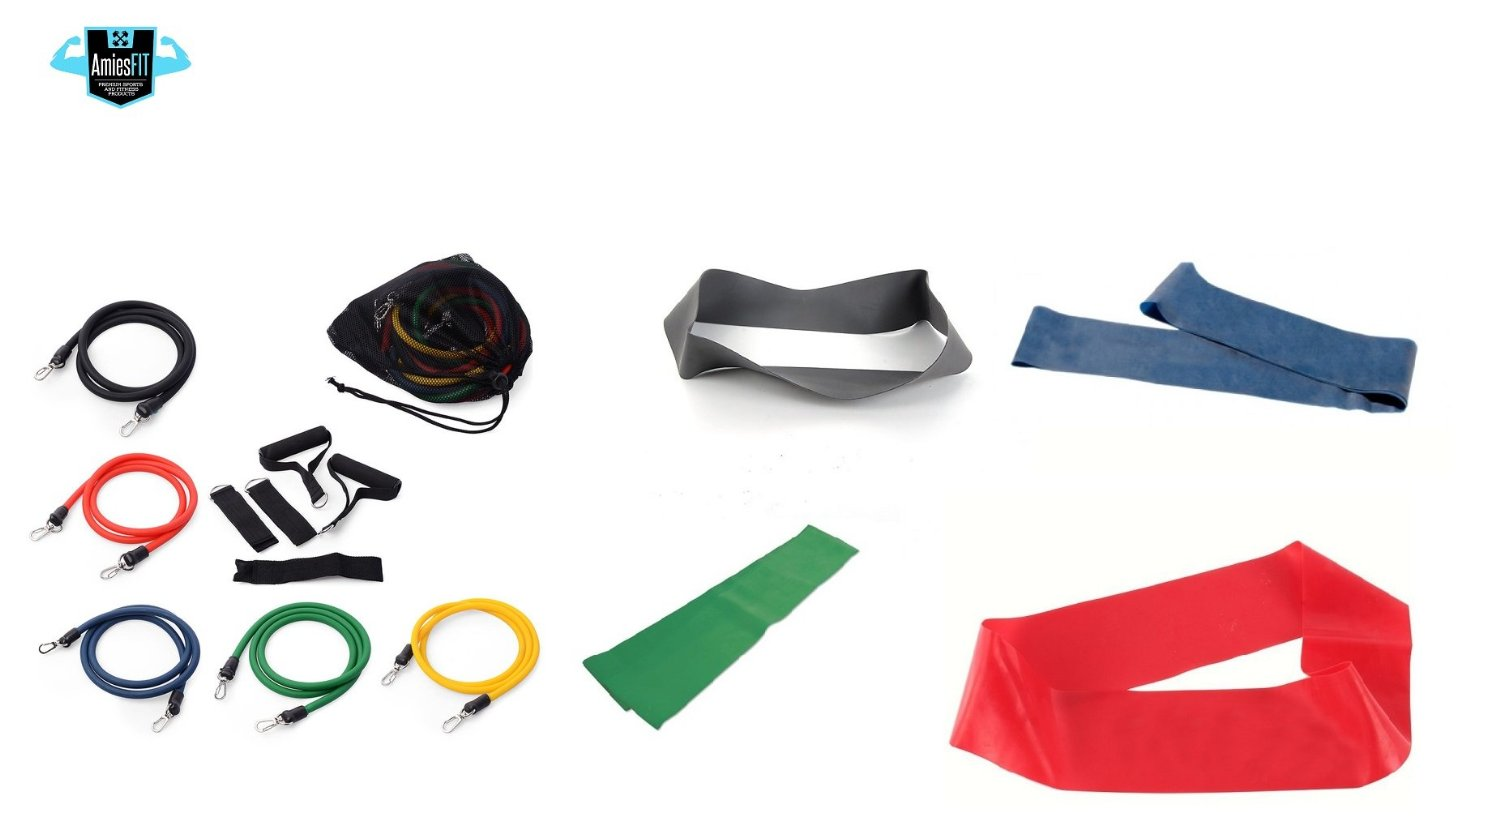 15pcs Heavy Duty Resistance Bands + Loop Exercise Band COMBO - 15Pcs Fitness Band Set includes Ankle Straps for Legs, Door Anchor, Handles, 4 Loops Bands - Crossfit, P90x, Home Gym, Travel + Therapy